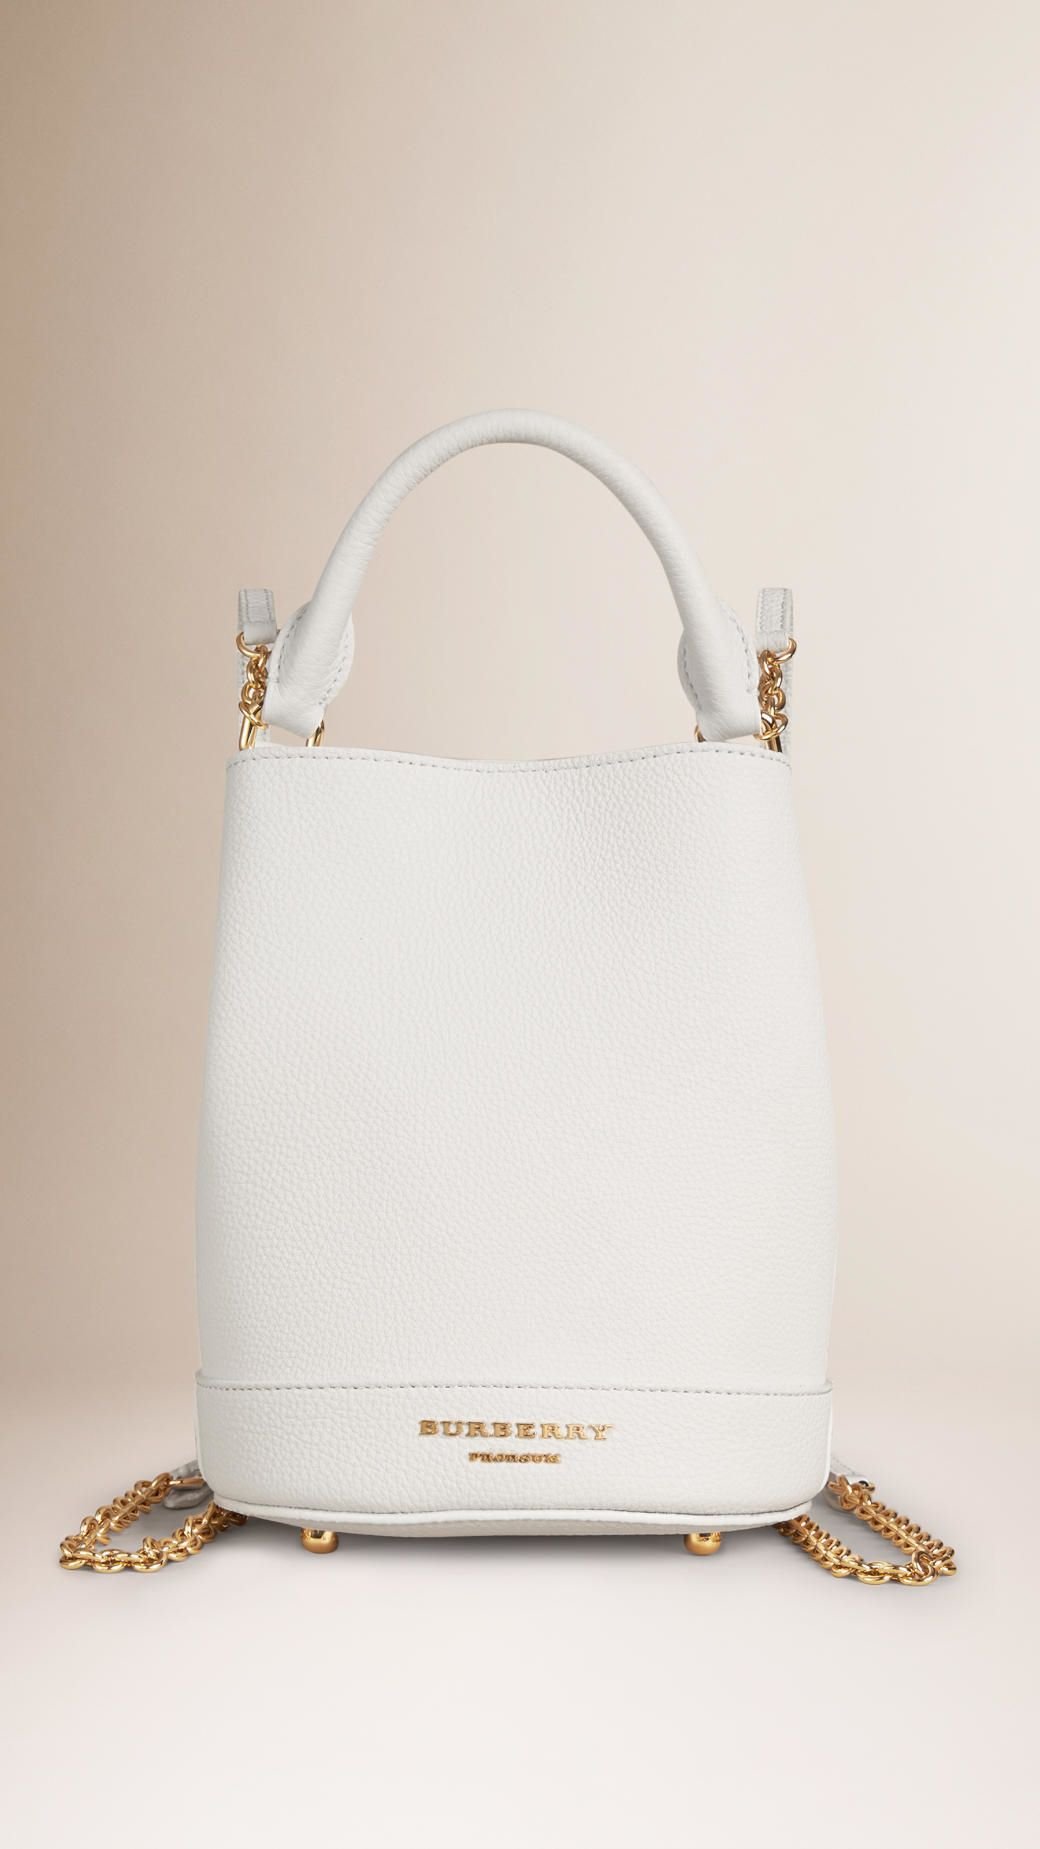 burberry backpack purse